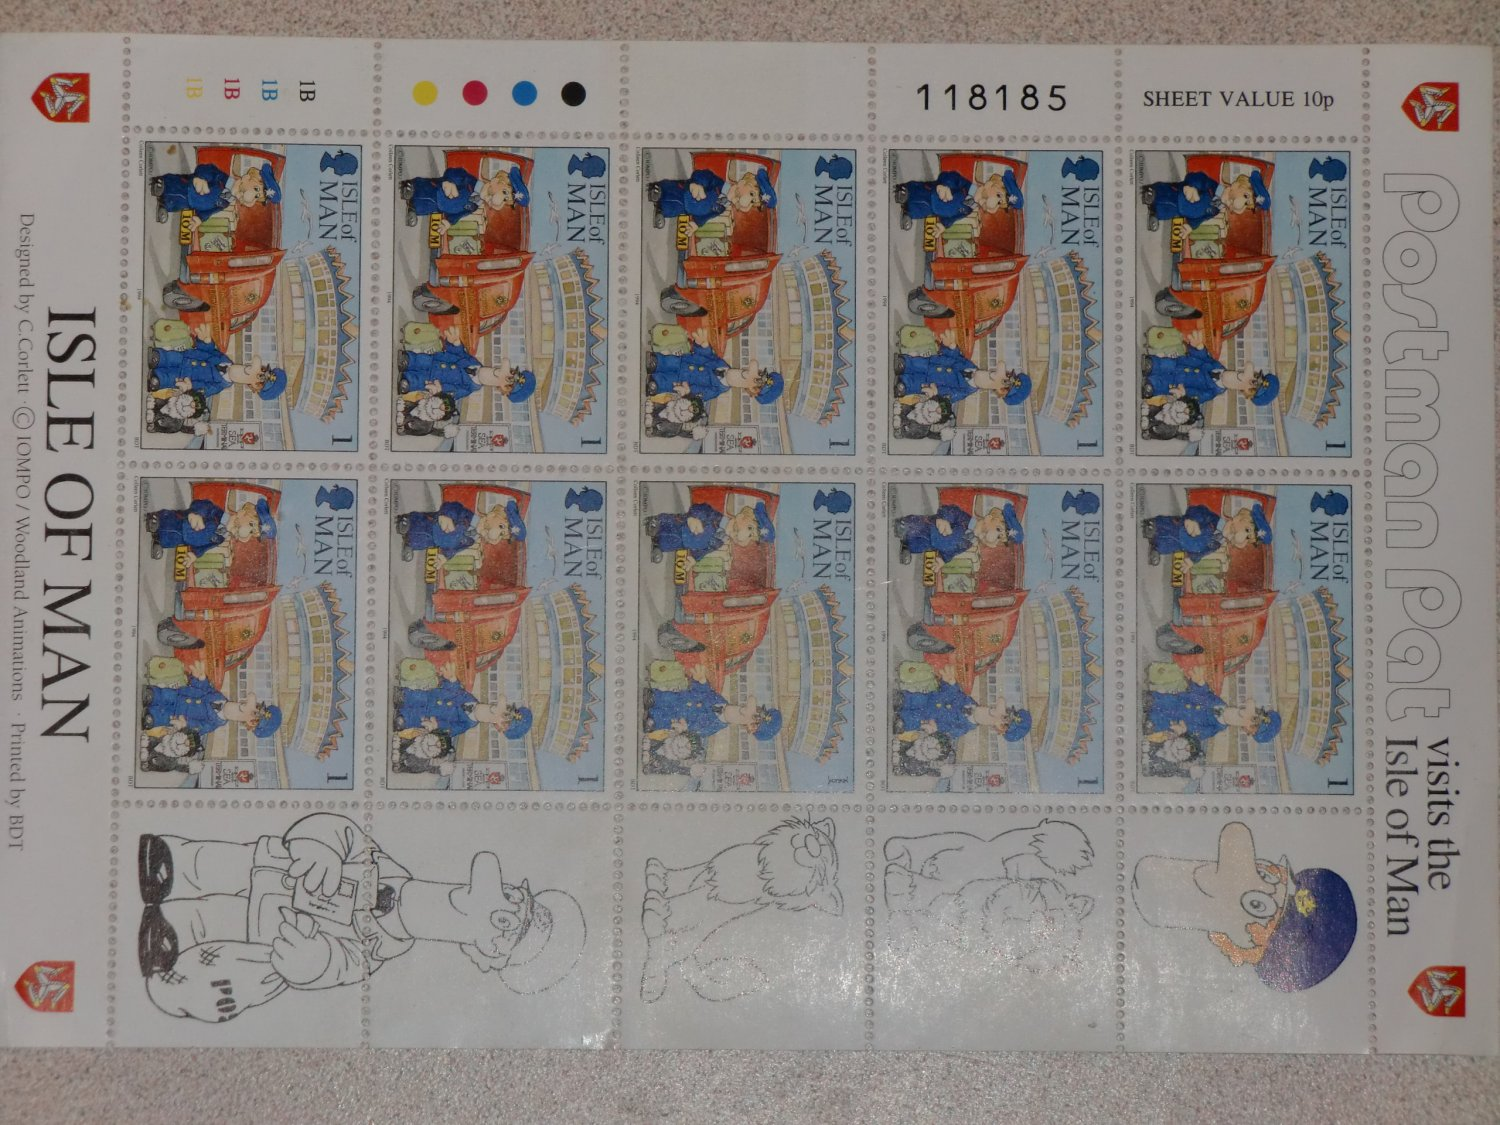 Isle Of Man United Kingdom  city photo : Postman Pat stamps, Isle of Man United Kingdom, Britain,England,